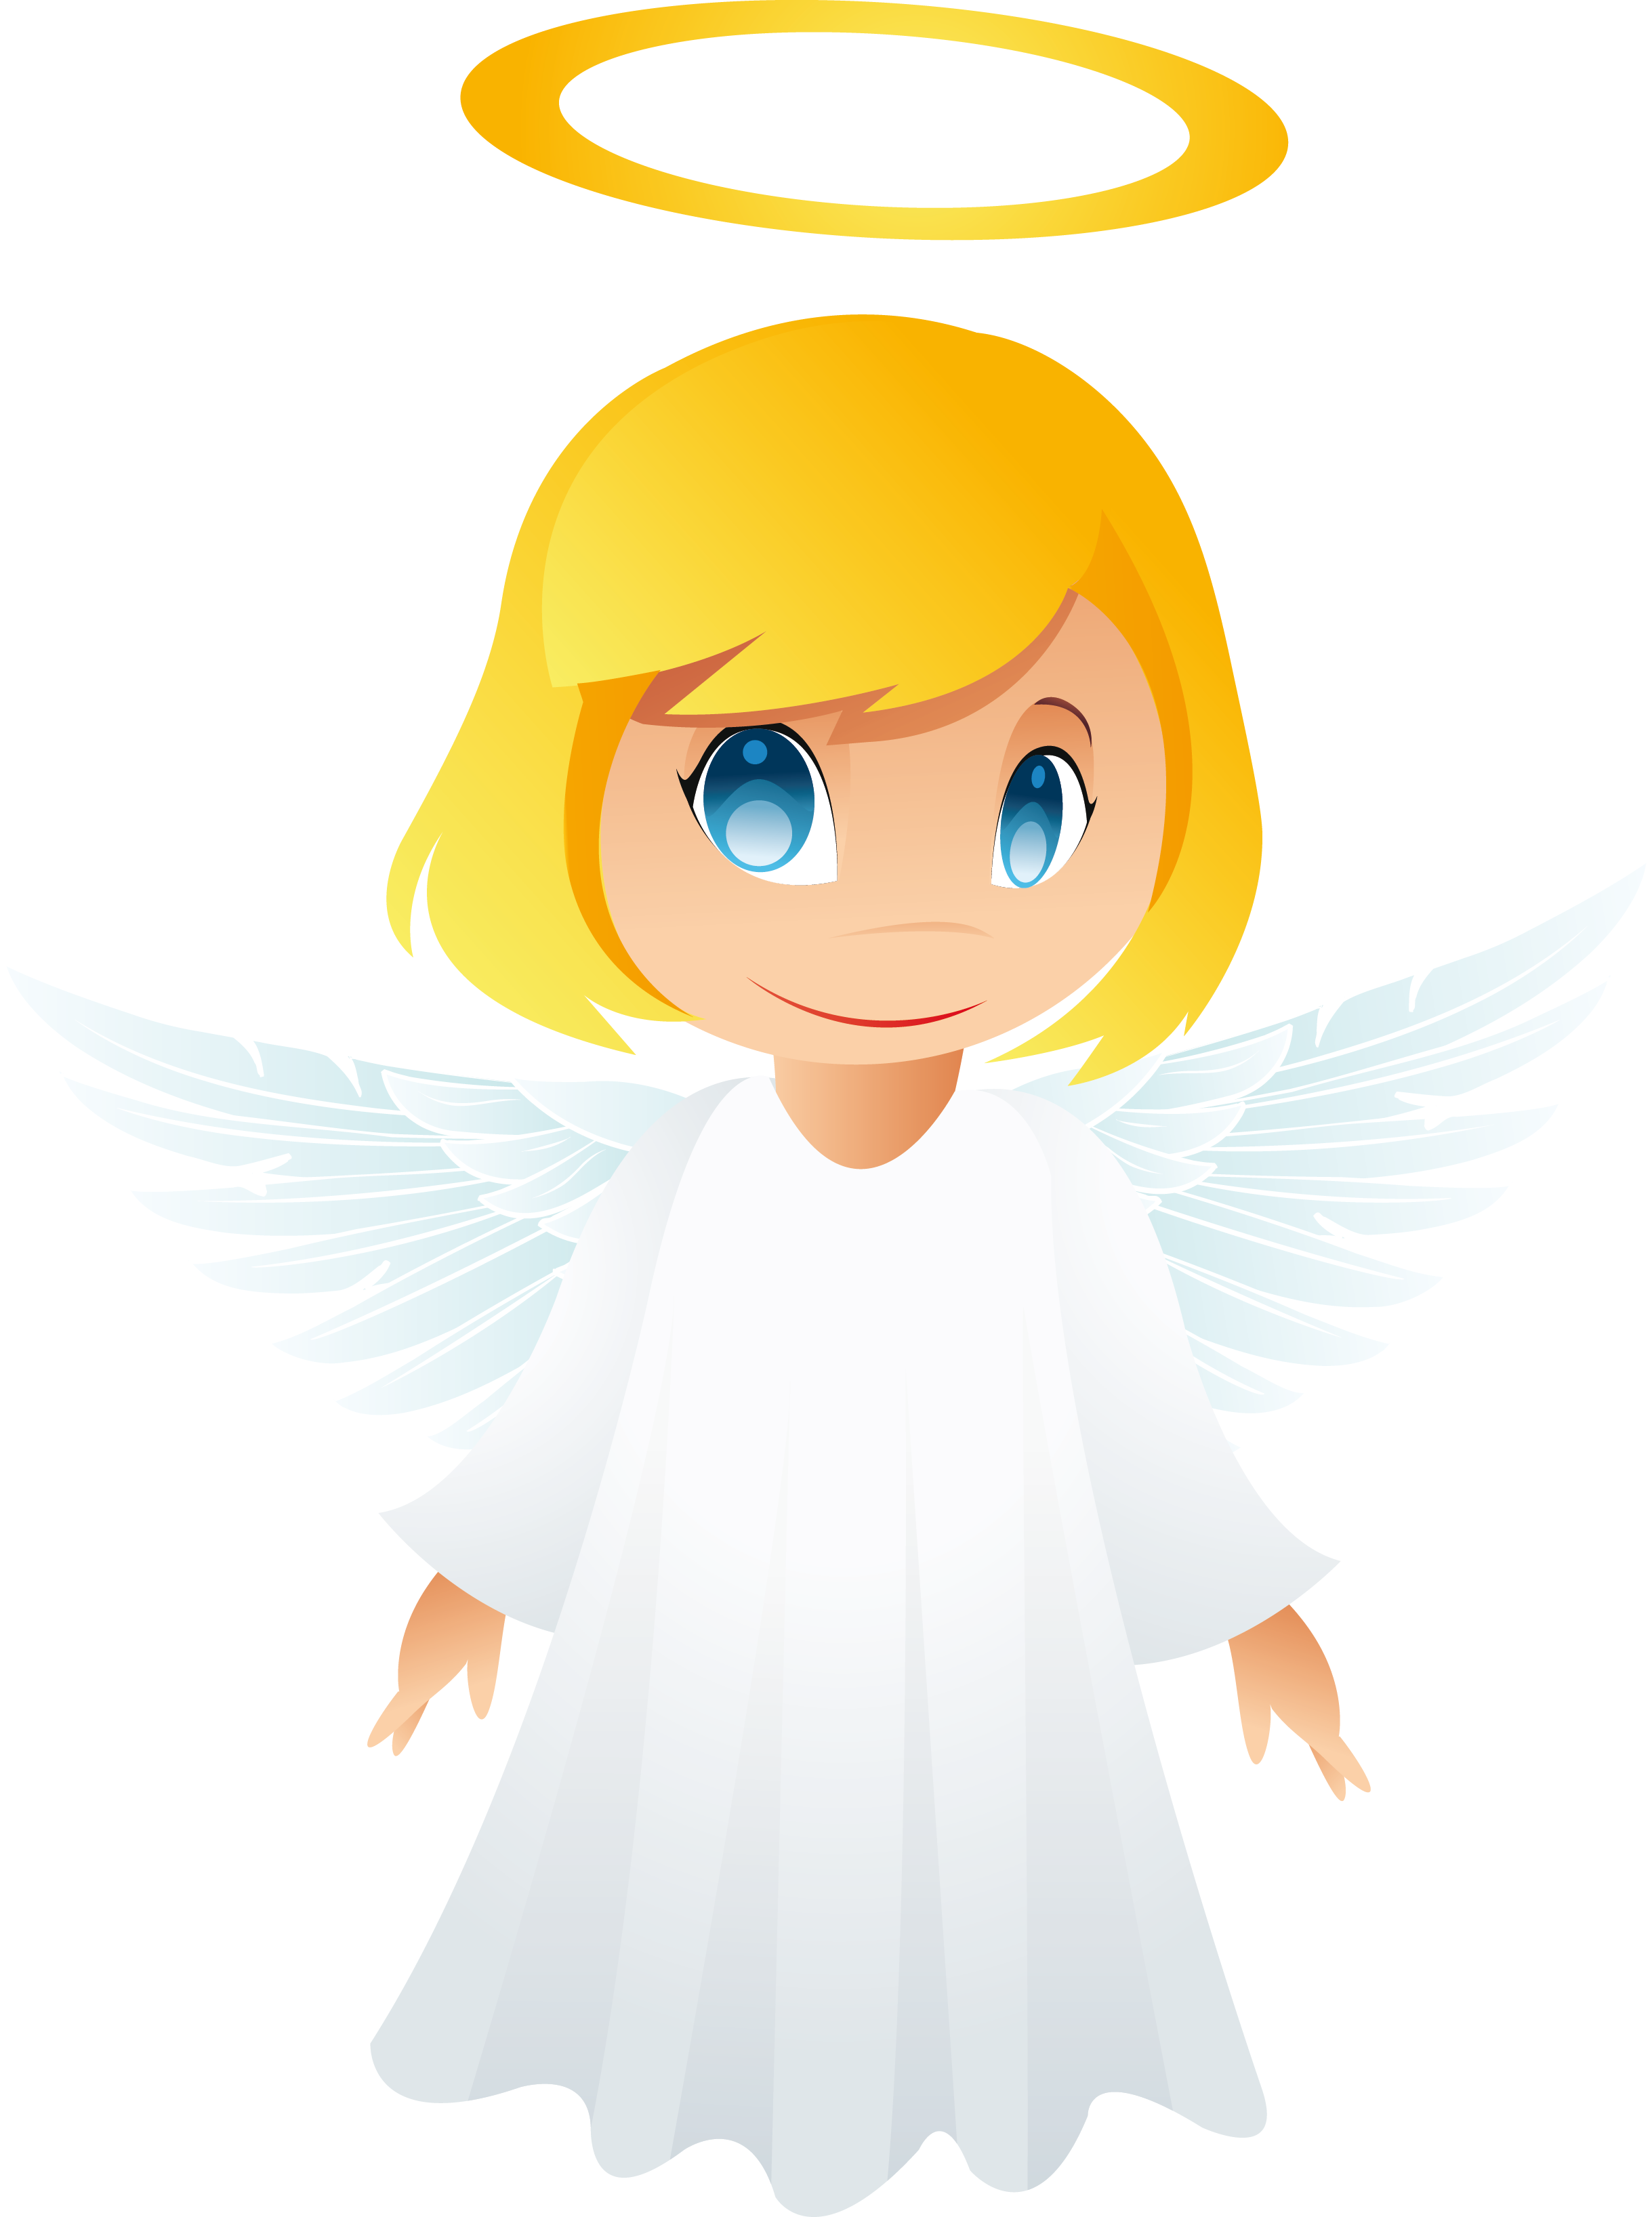 angel clipart free graphics of cherubs and angels the cliparts rh pinterest com guardian angel day clipart guardian angel clip art cut